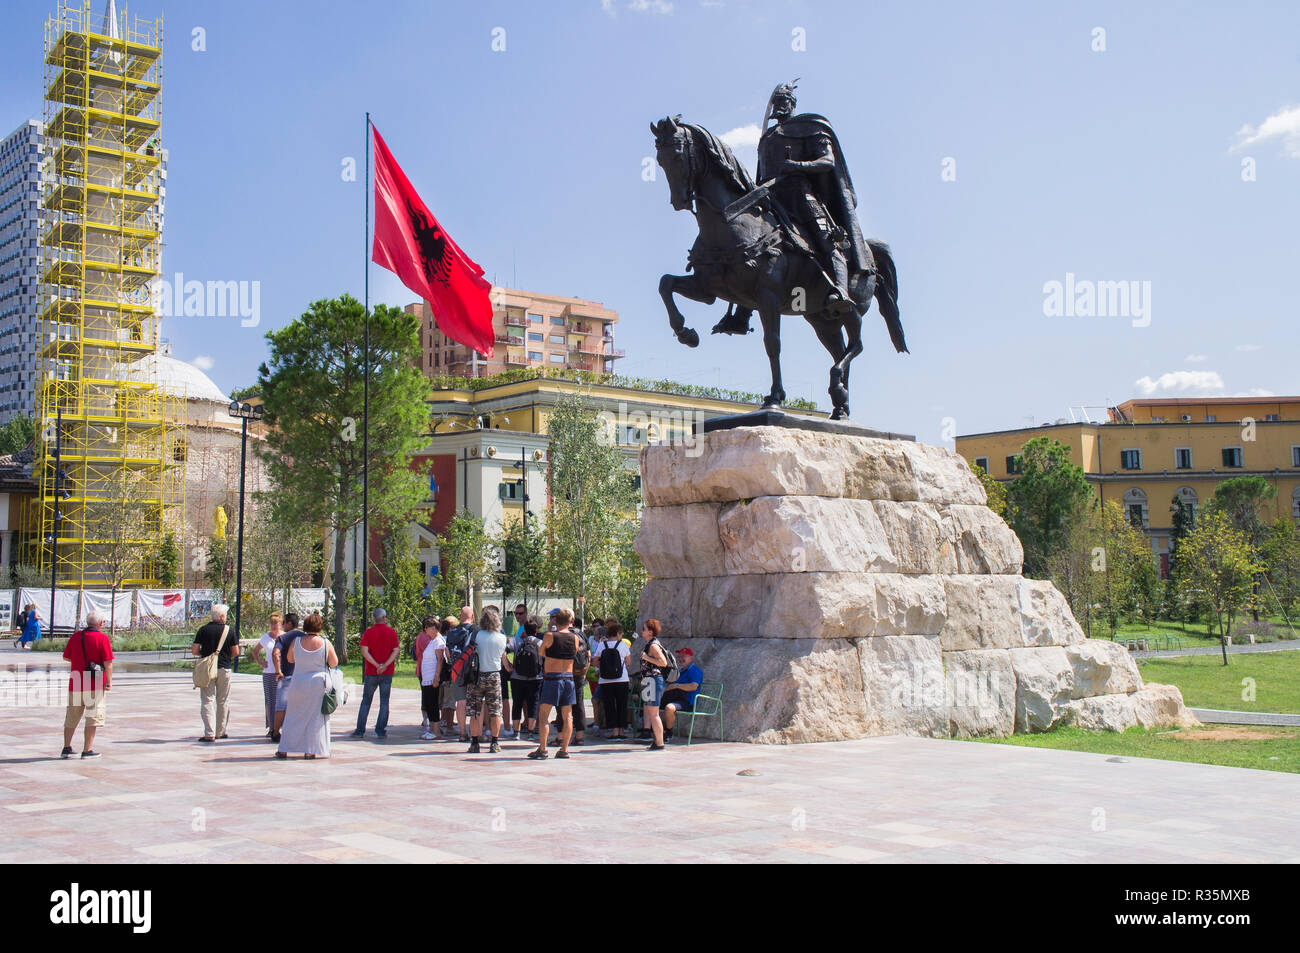 The Hadji Et'hem Bey Mosque, Skanderbeg equestrian statue in Skanderbeg Square in Tirana, the capital and biggest city of Albania. September 7, 2018.  - Stock Image